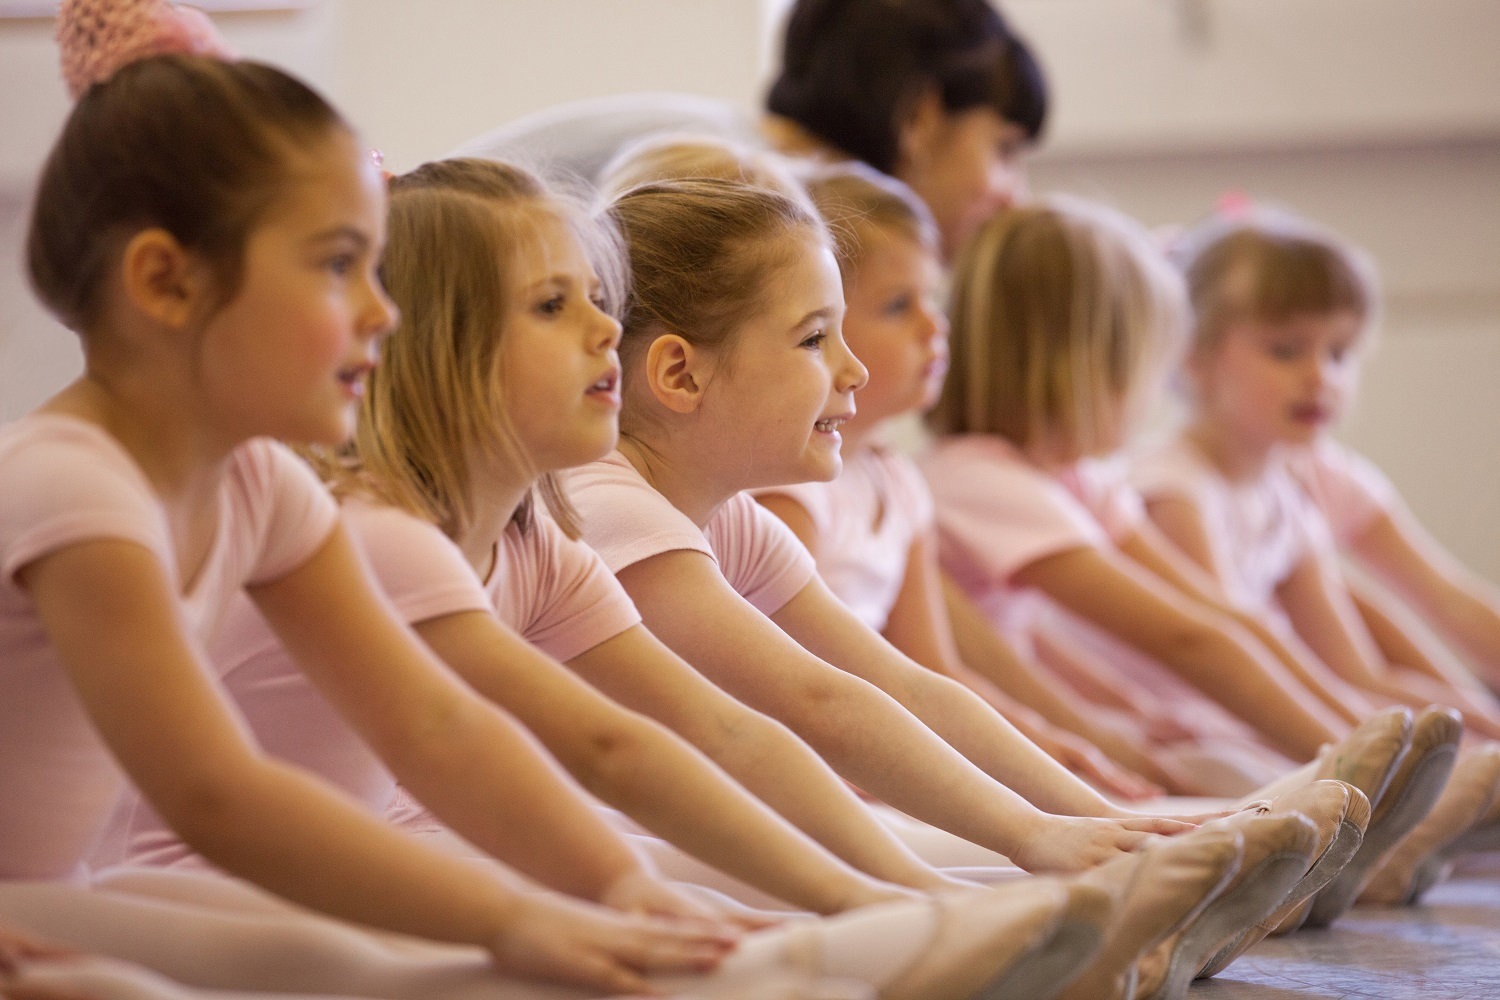 Ballet Academy East Classes for NYC Kids